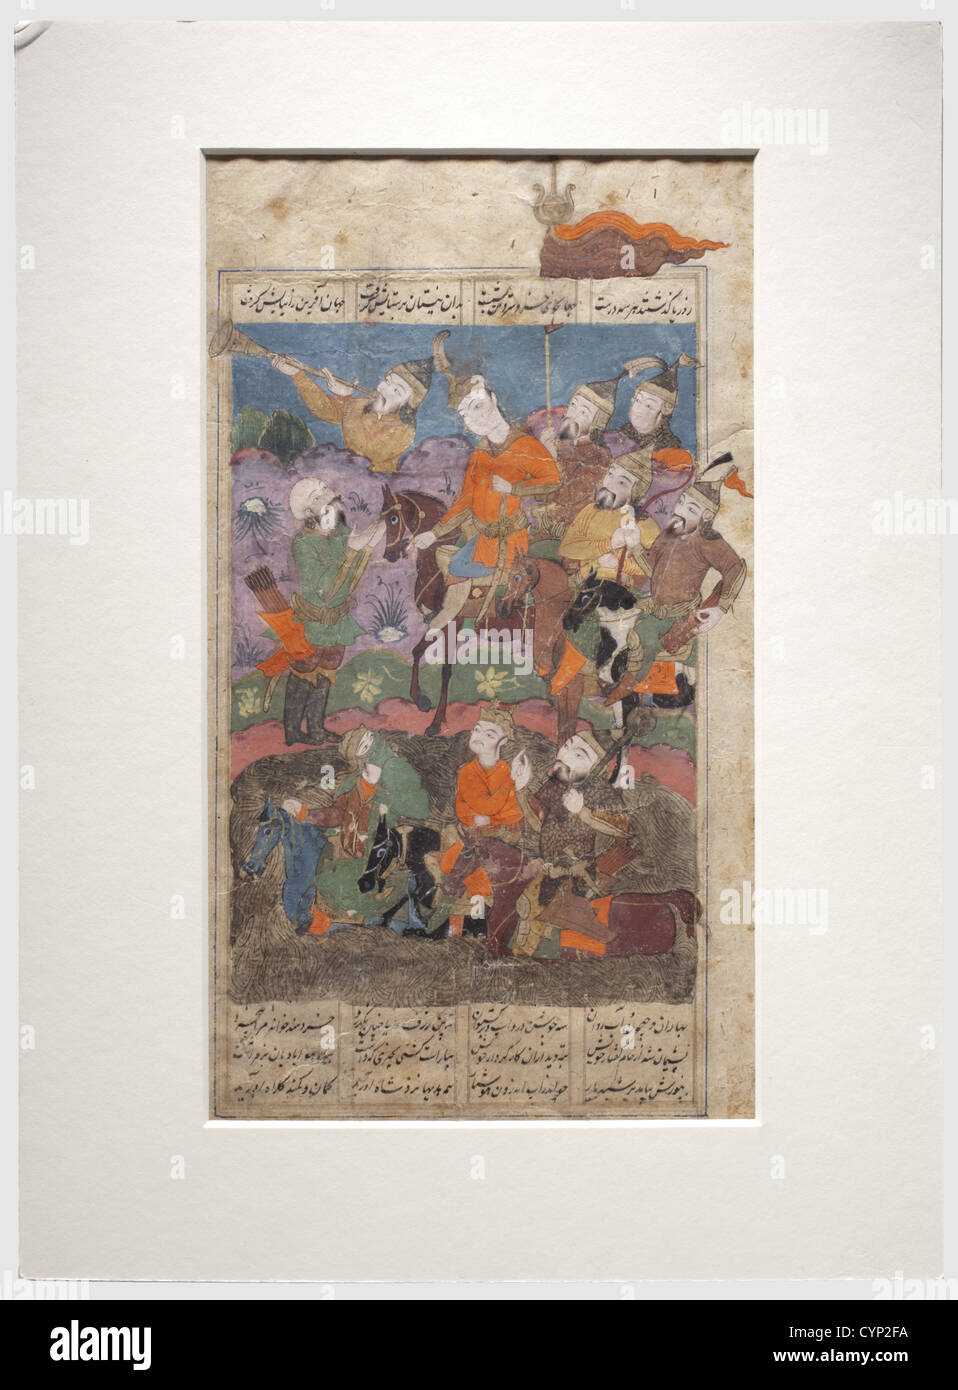 A miniature from the Shahnama, Persia, early Safavid dynasty, provincial work from the 16th/17th century. Gouache - Stock Image